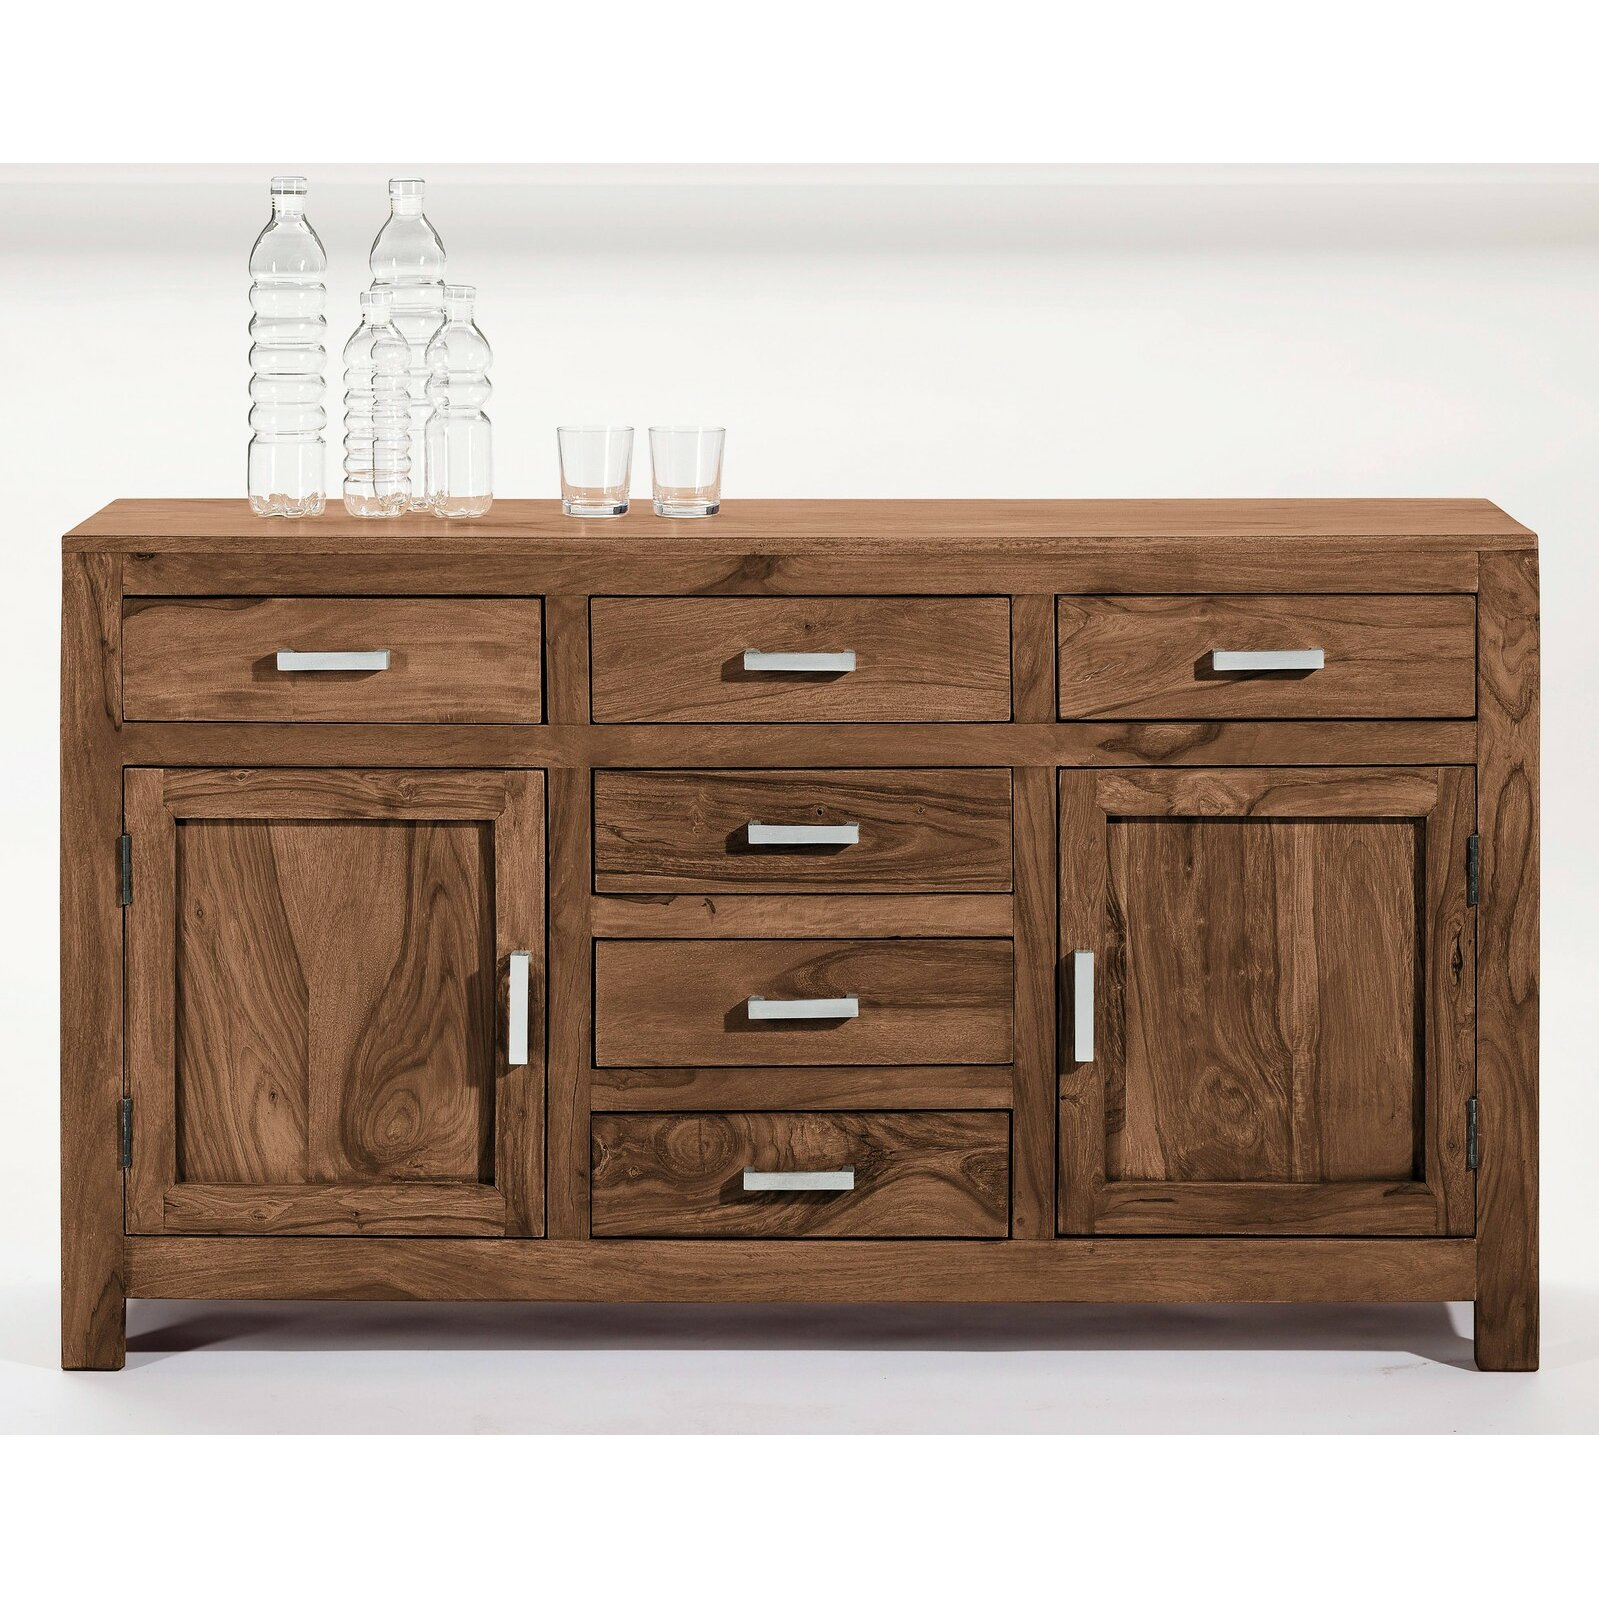 sam stil art m bel gmbh sideboard warri. Black Bedroom Furniture Sets. Home Design Ideas